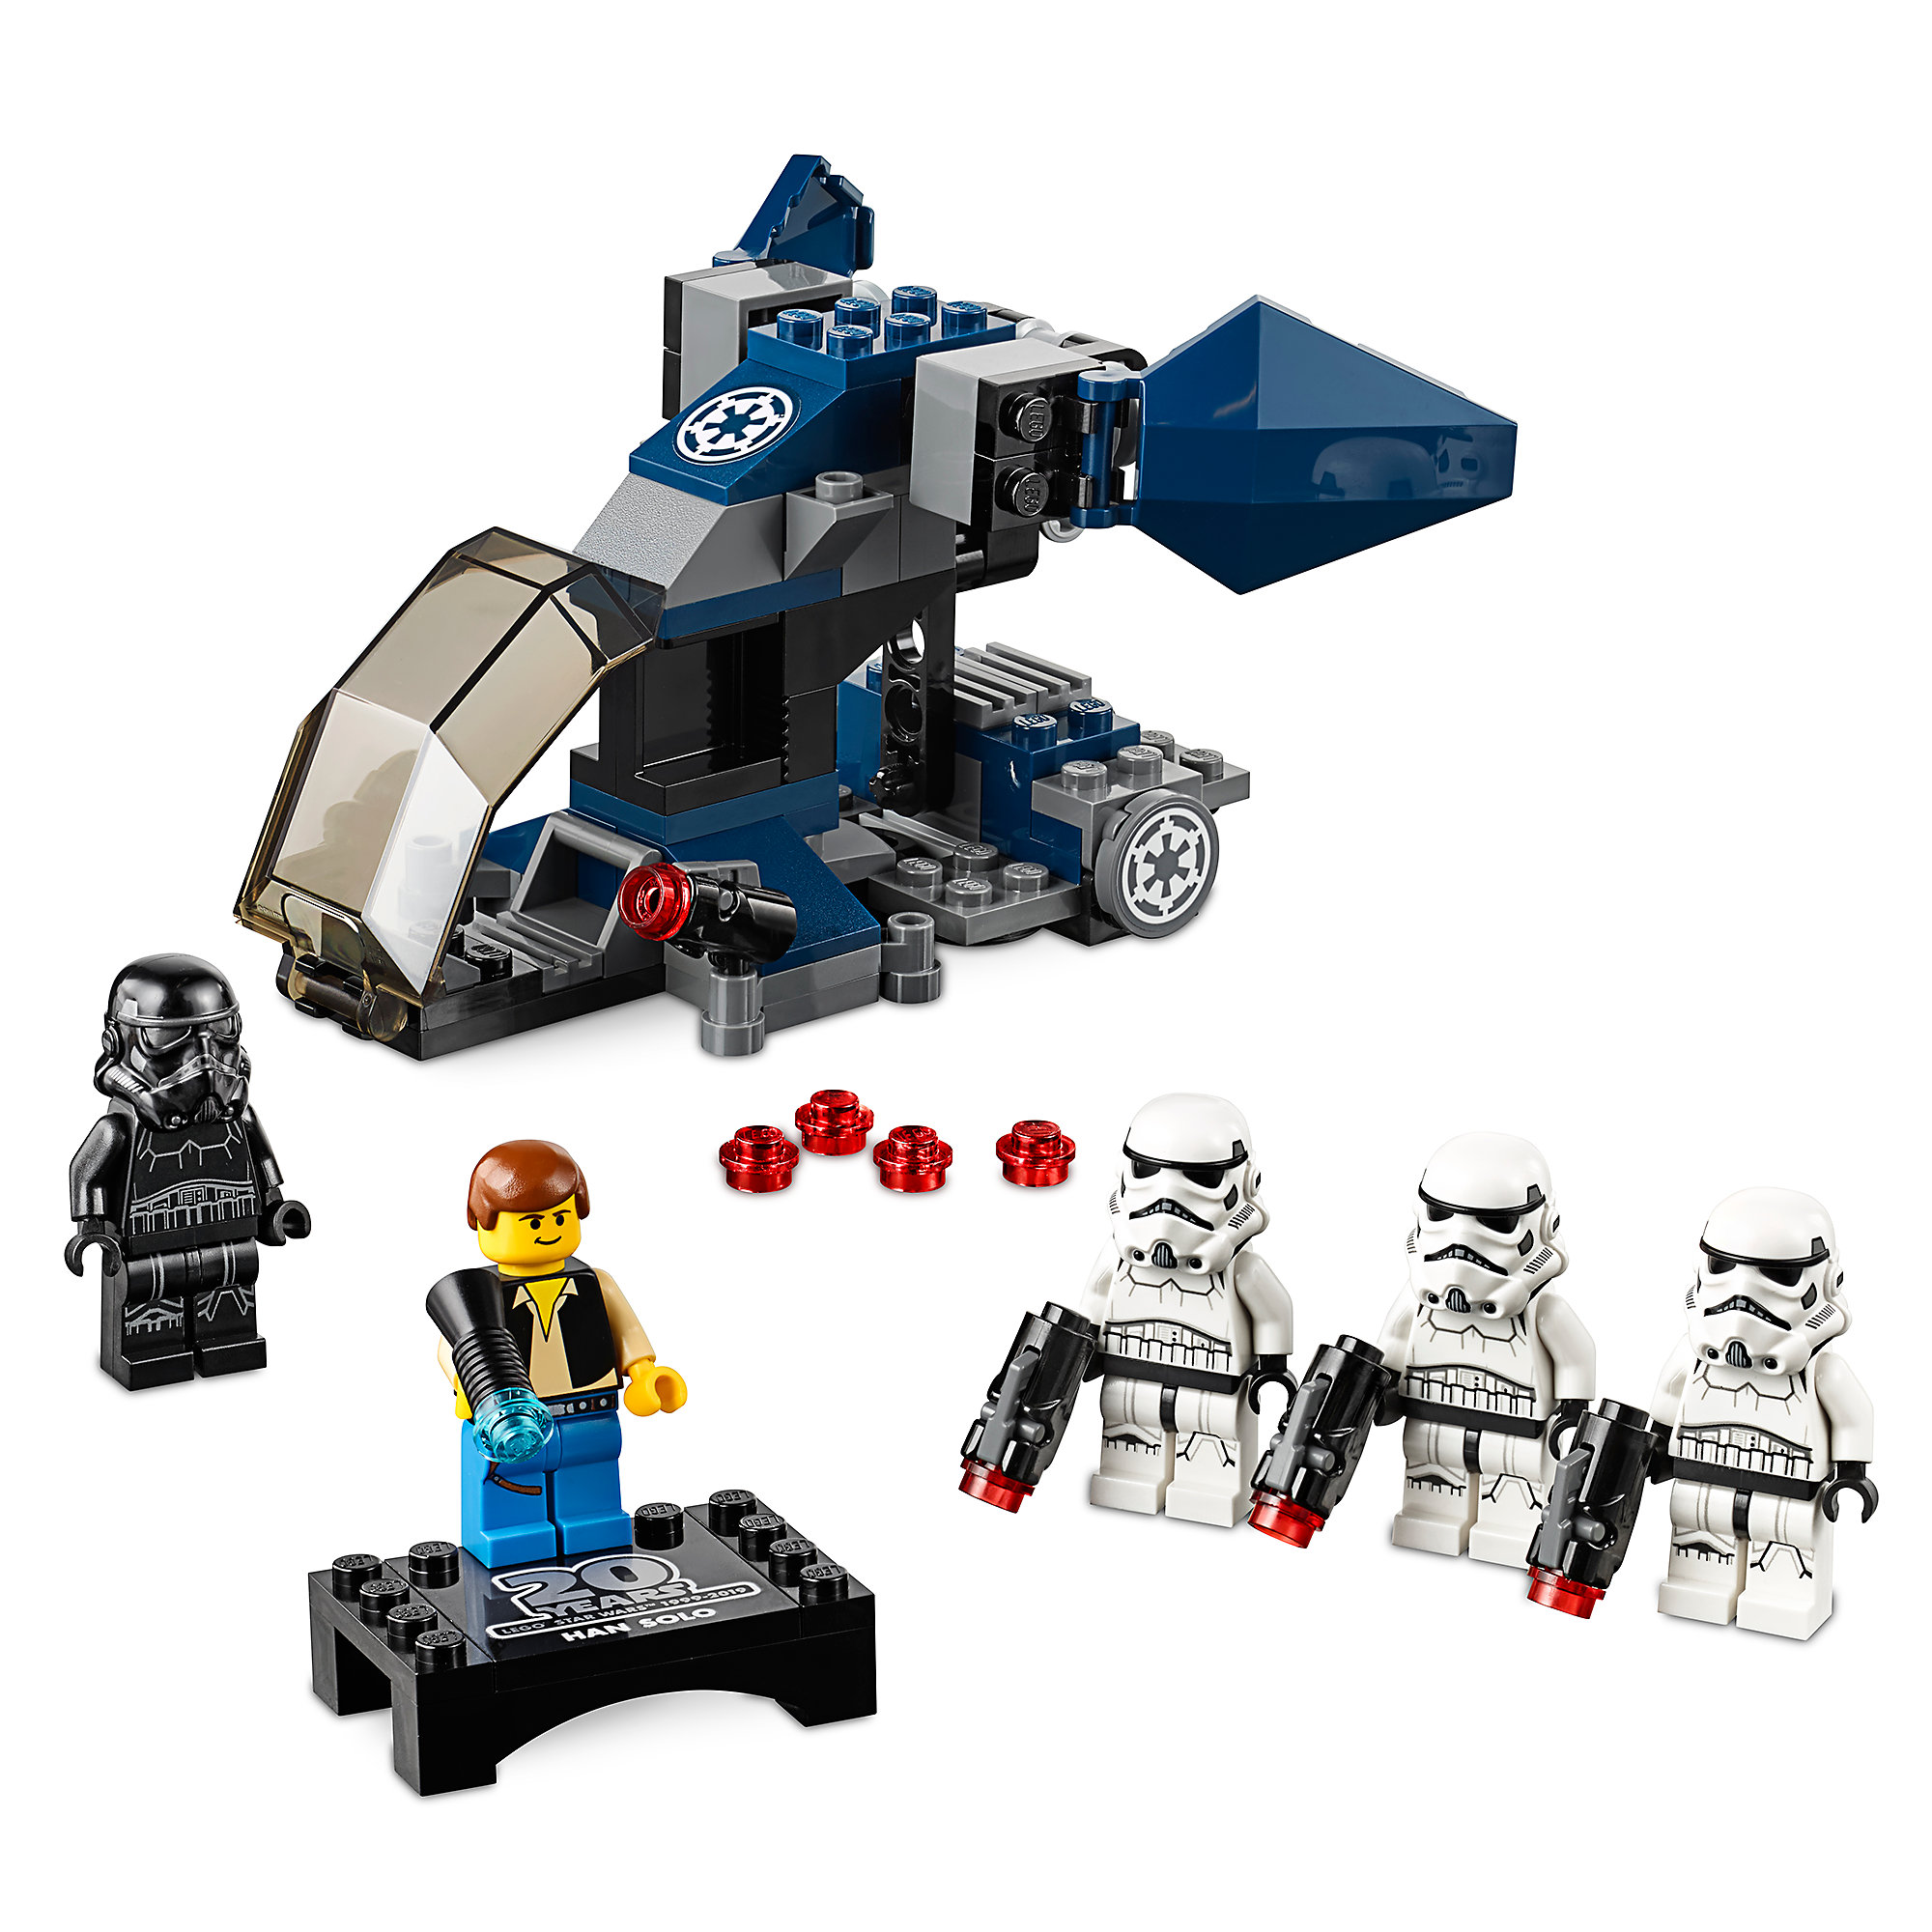 Imperial Dropship - 20th Anniversary Edition Play Set by LEGO - Star Wars